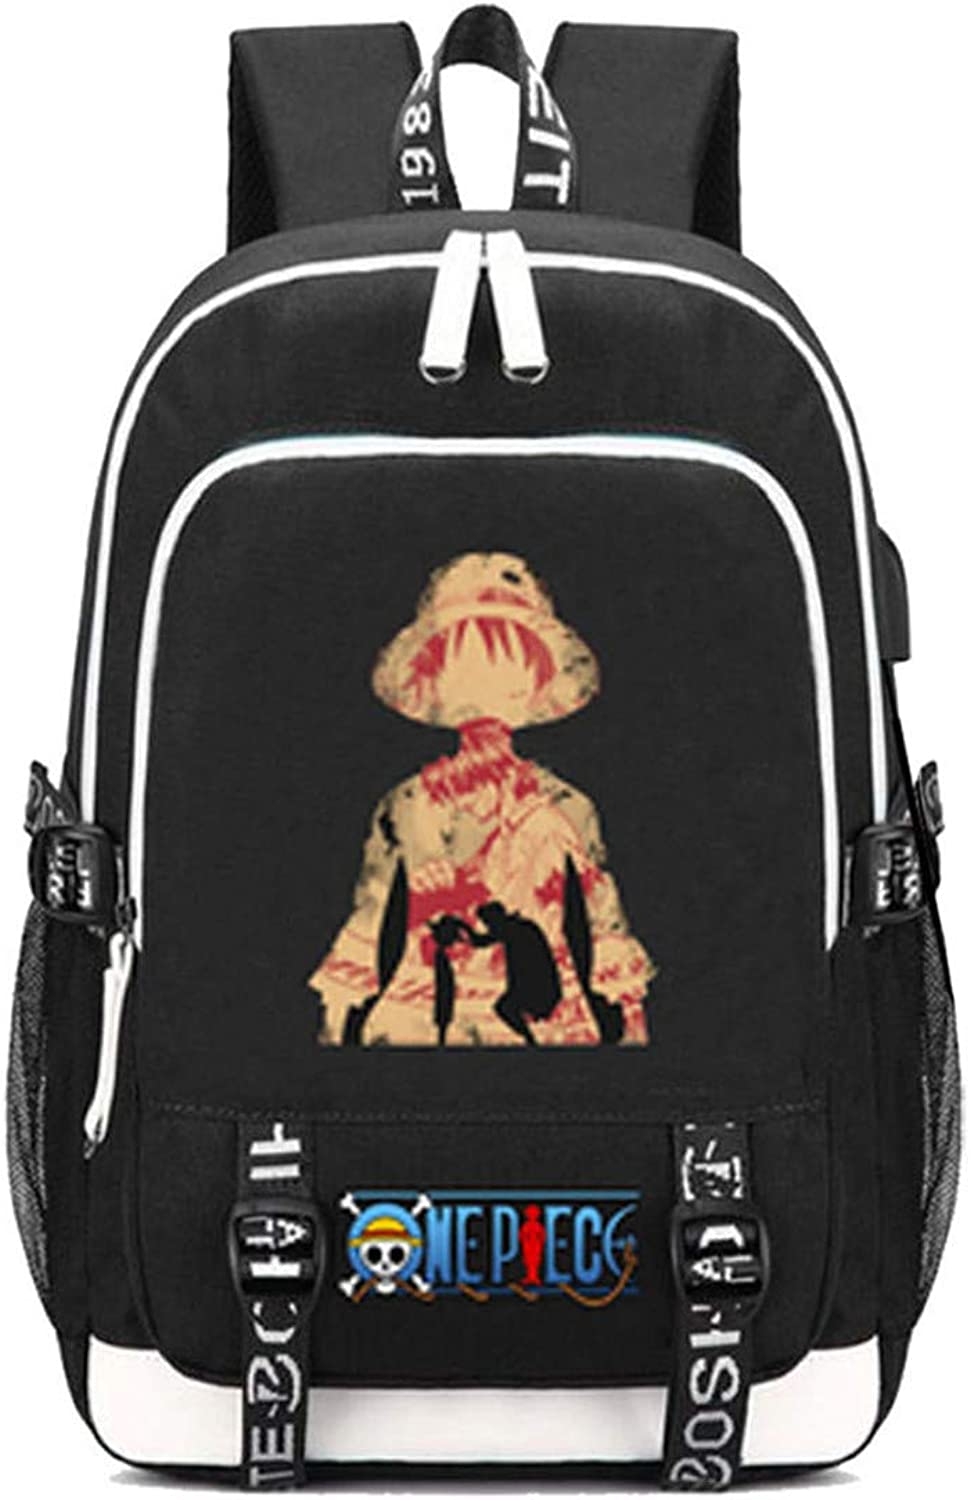 Cosstars One Piece Anime Backpack Schultasche Laptop-Rucksack mit USB-Ladeanschluss und Kopfhreranschluss  16